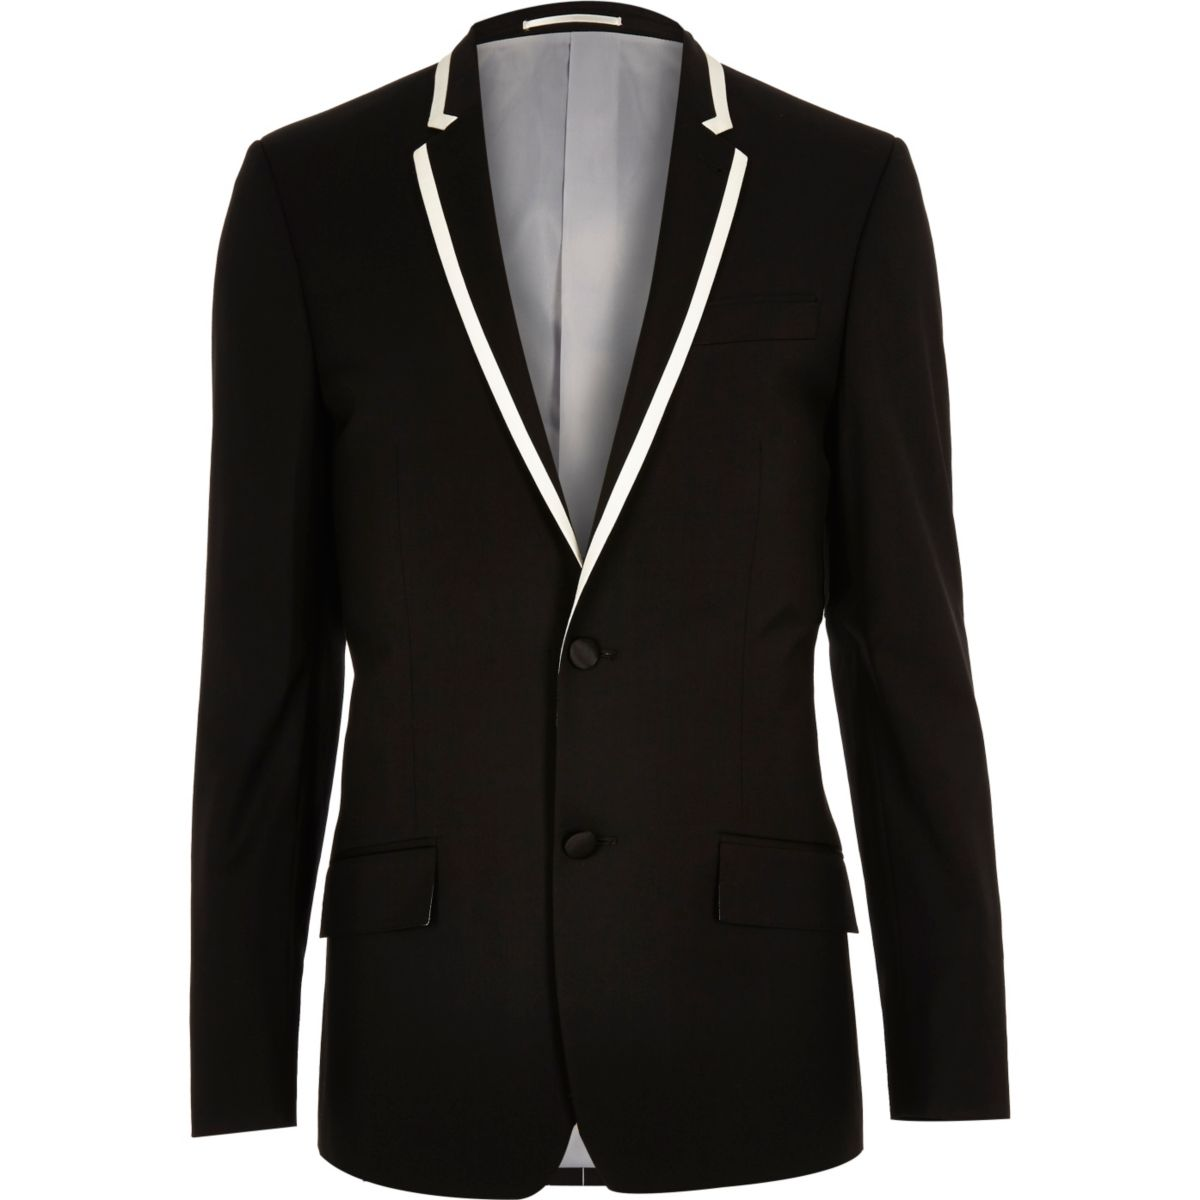 Black skinny fit prom suit jacket